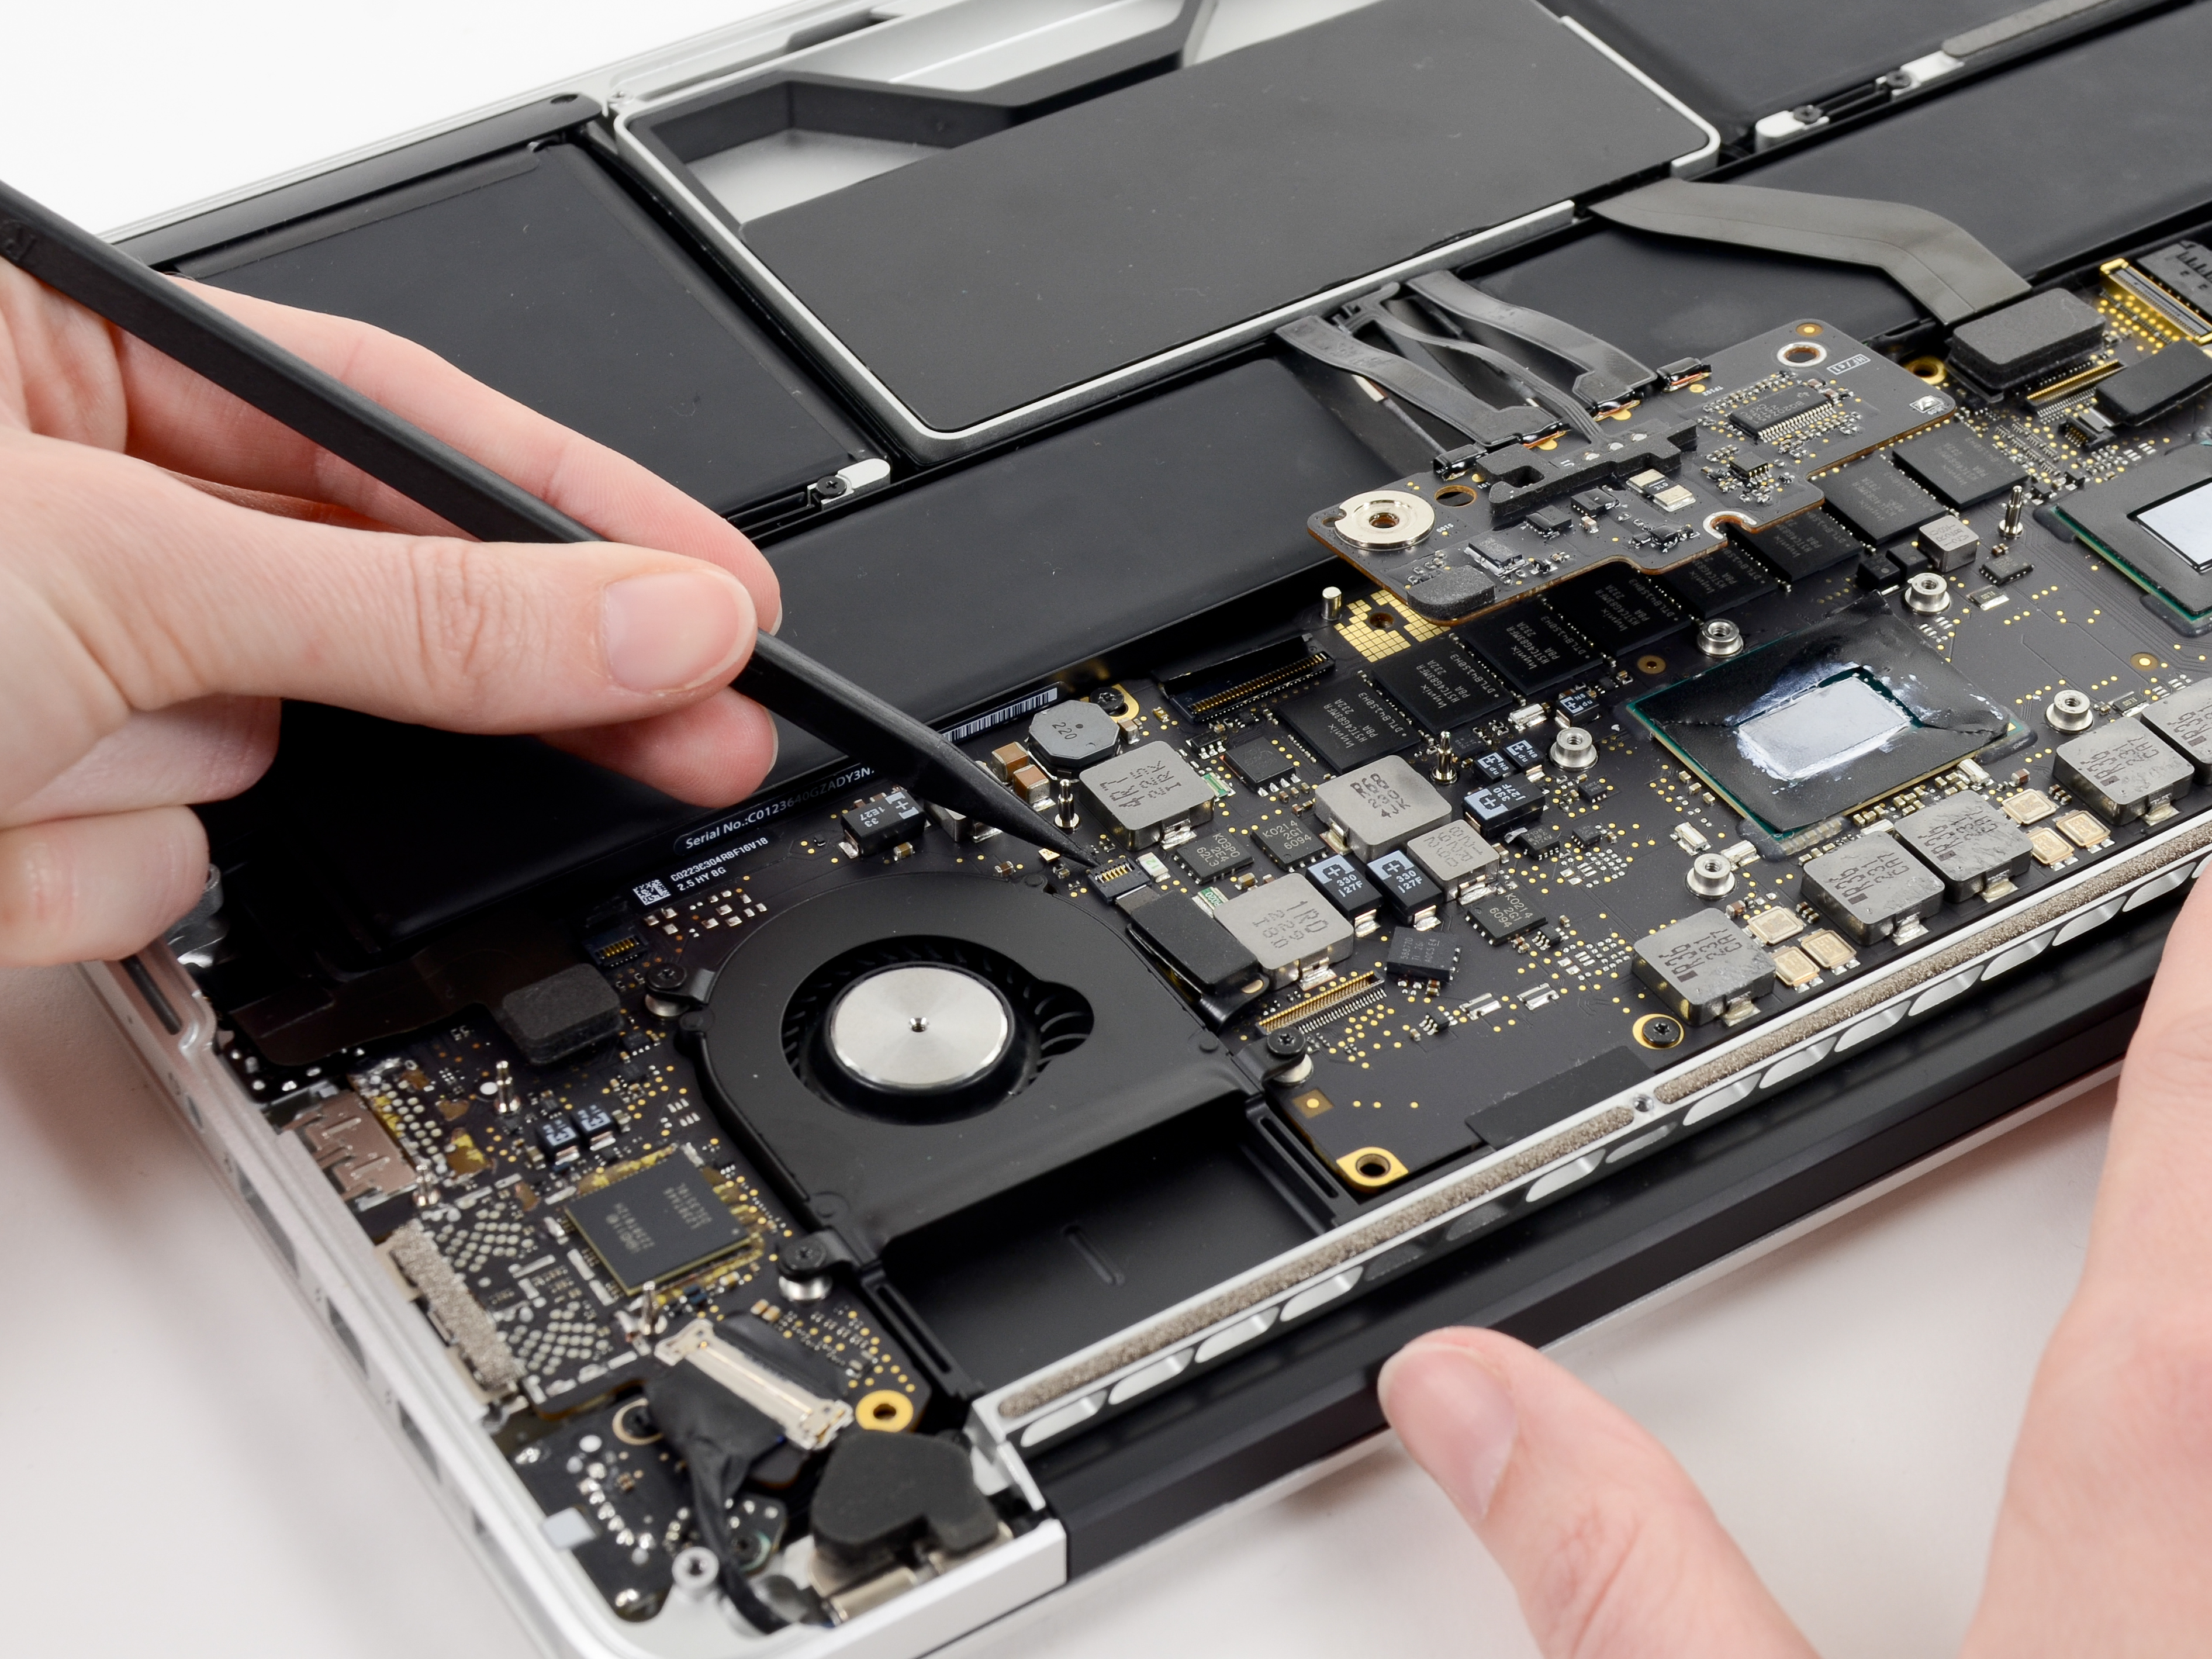 Apple Macbook Logic Board Repair - Repair Any Computer